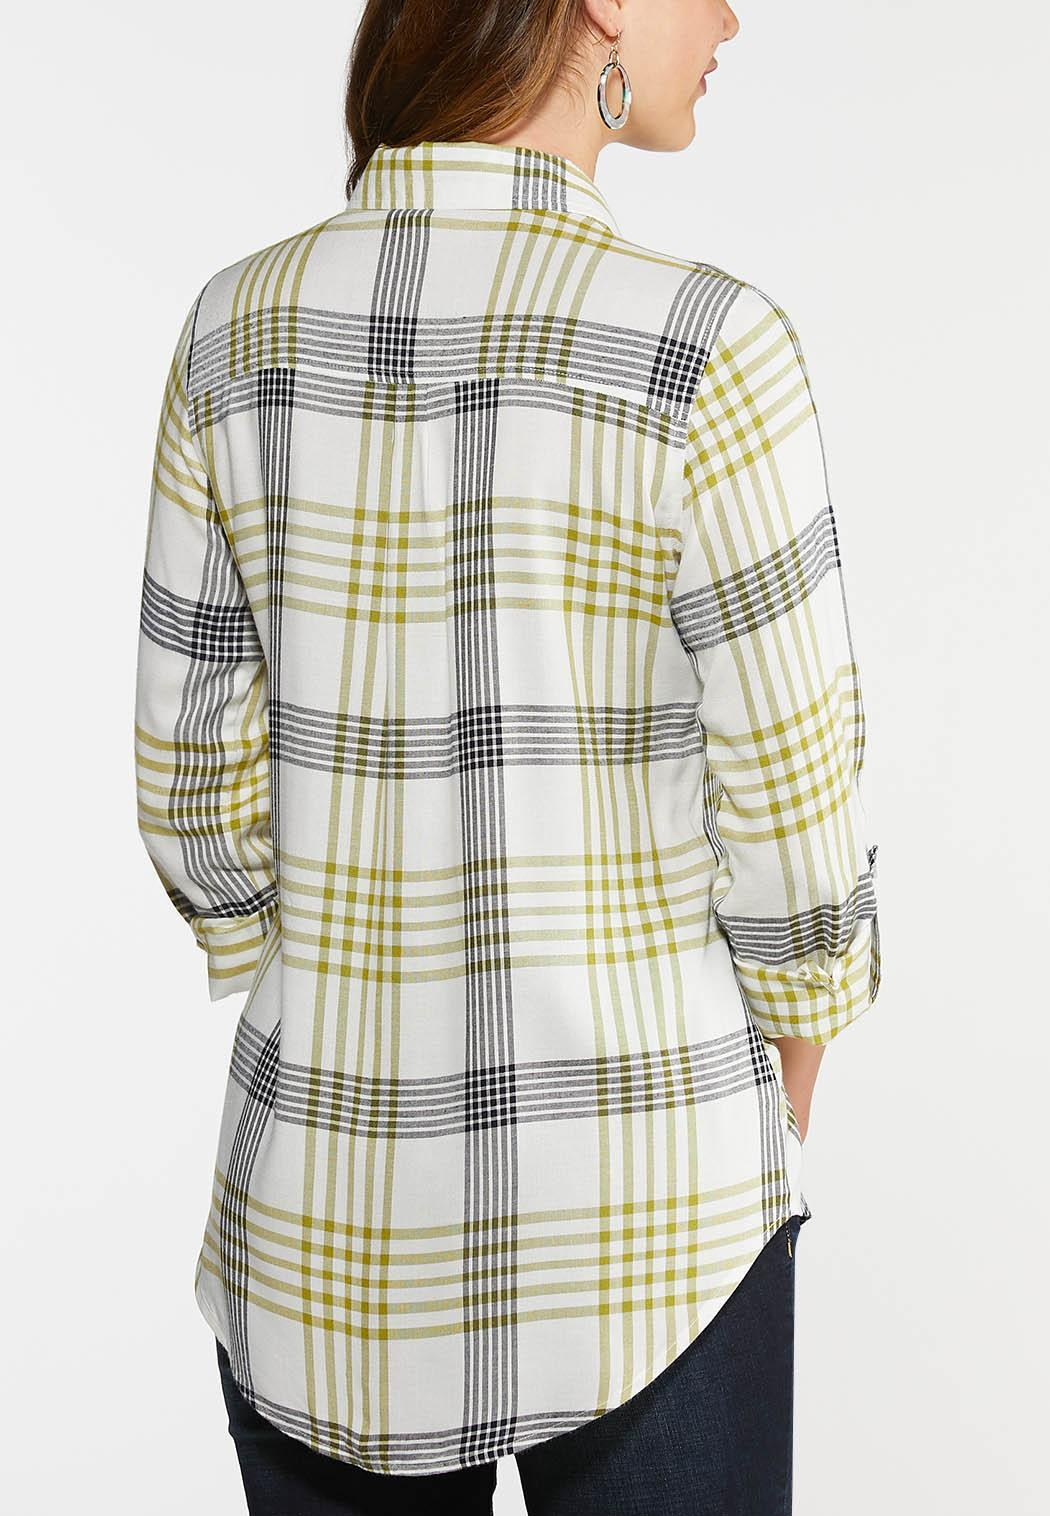 Green Plaid Shirt (Item #43967425)